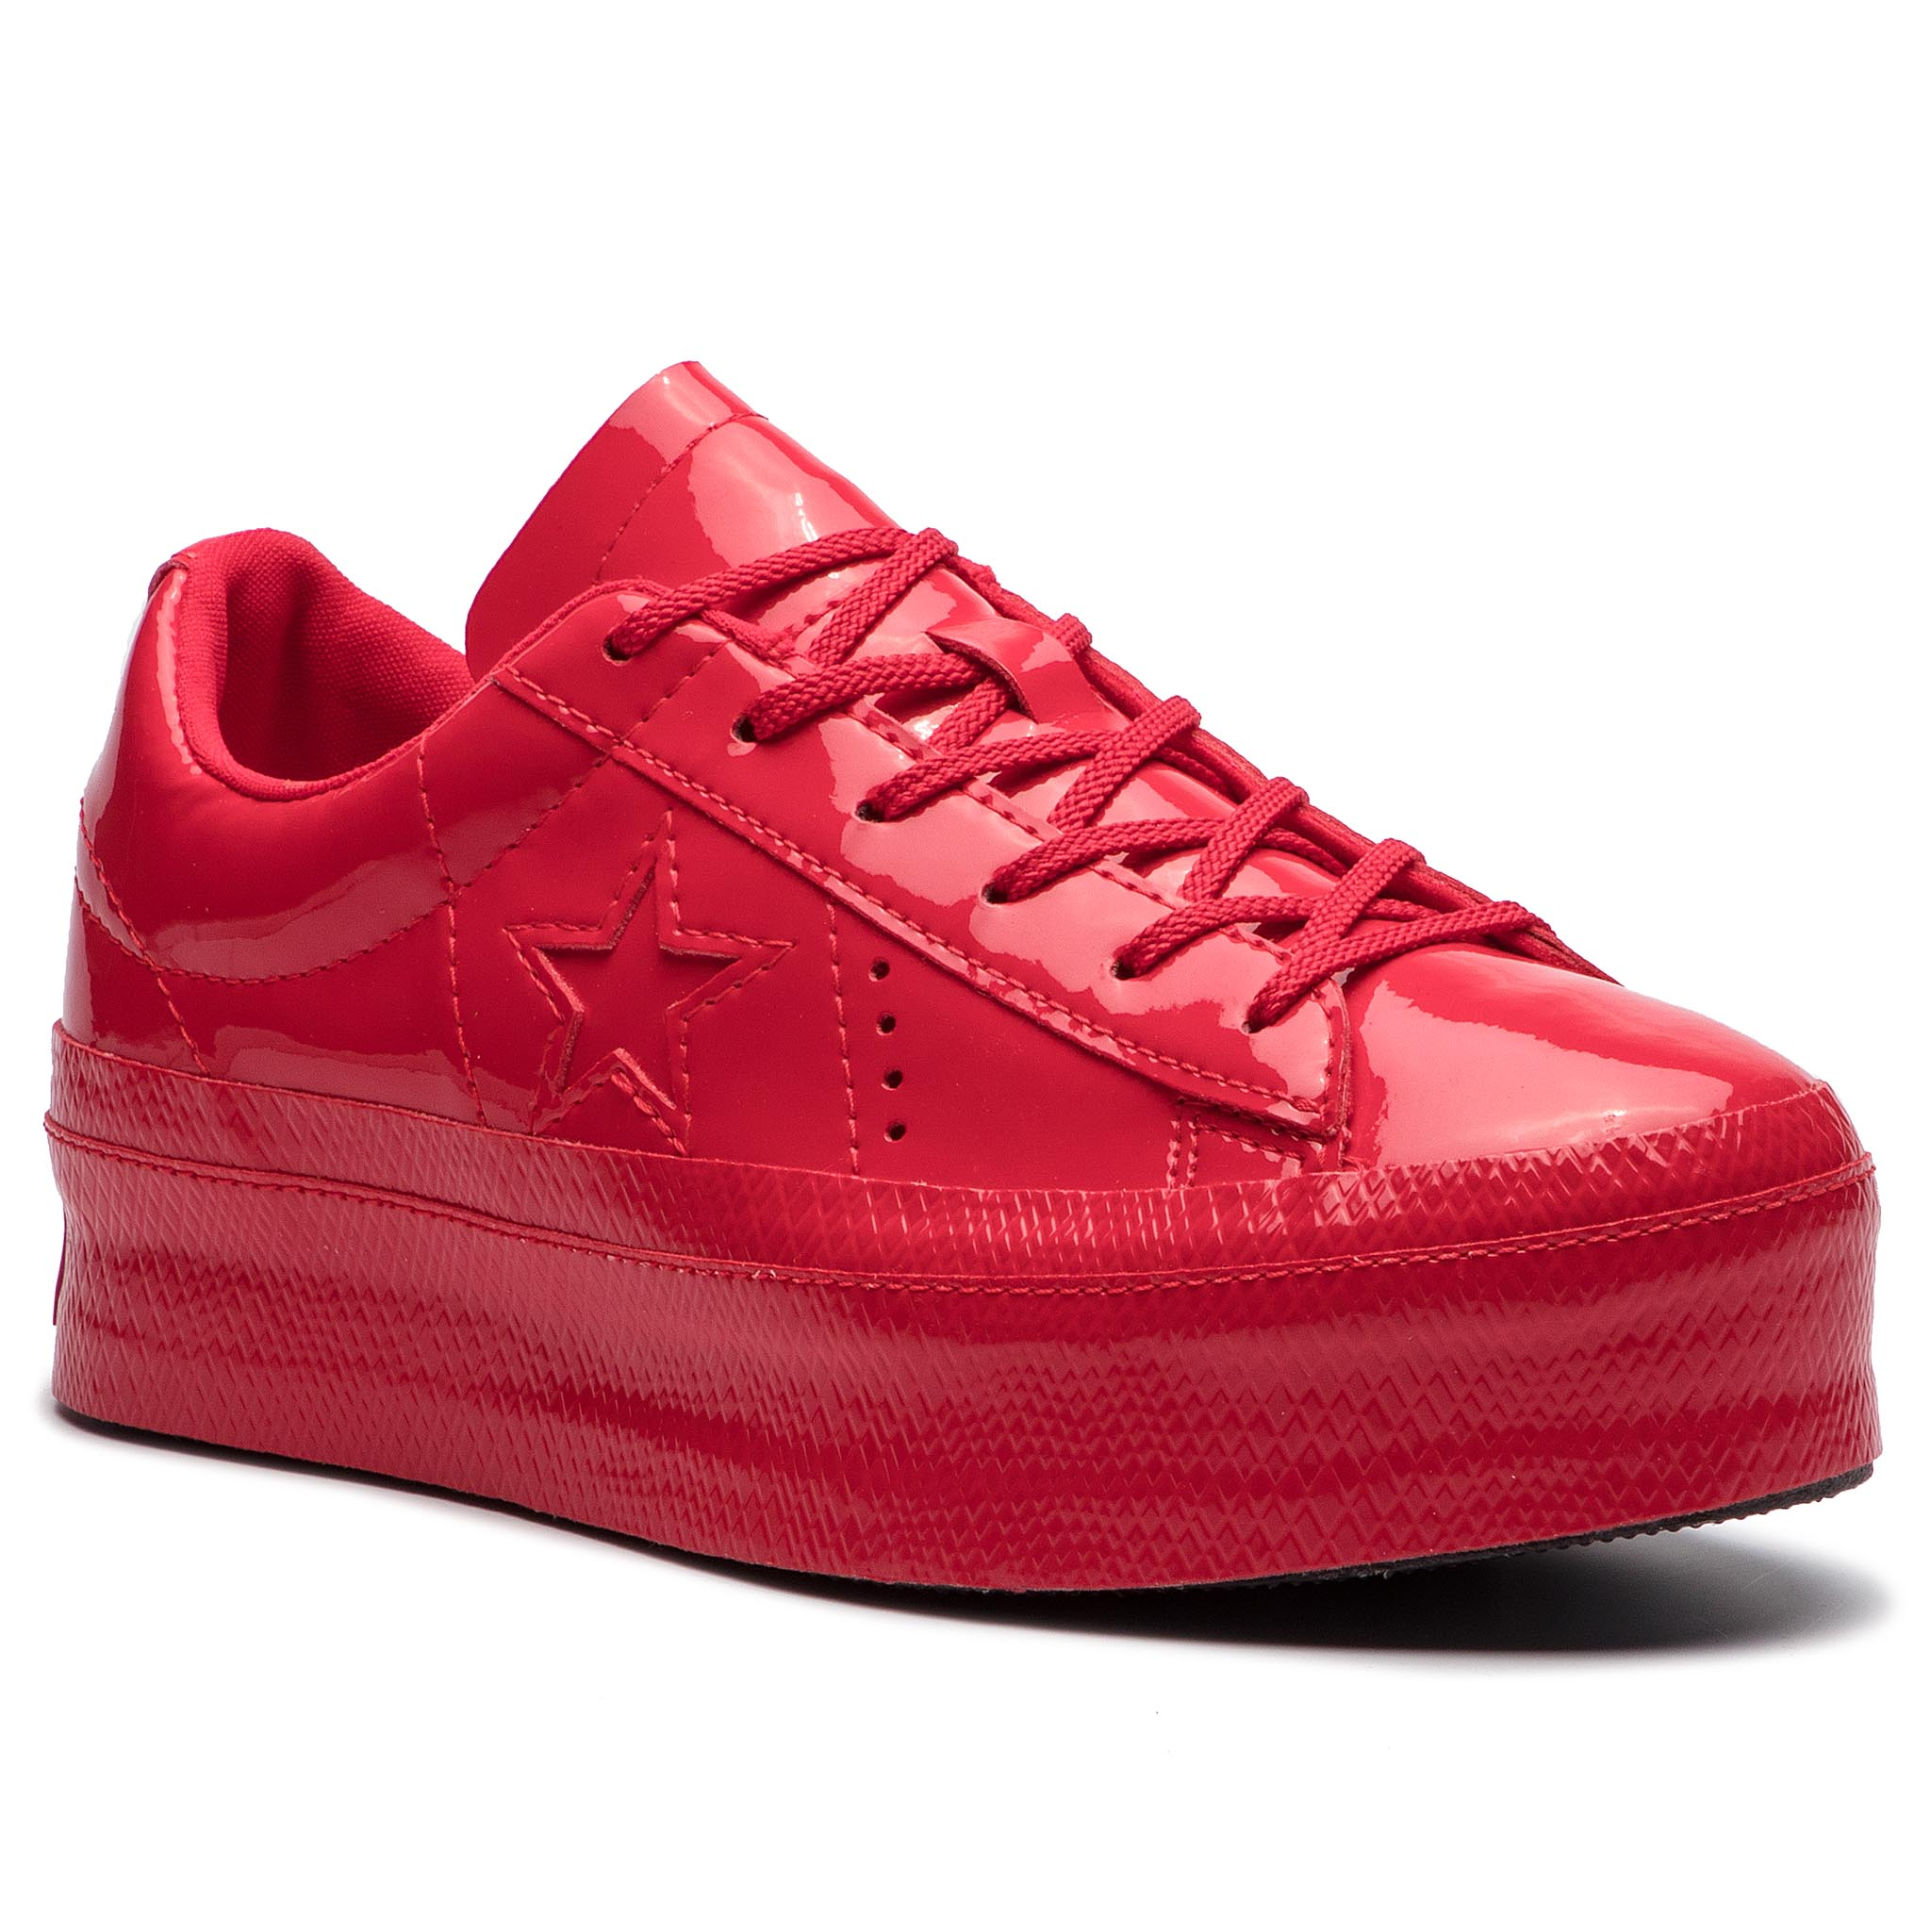 f9ef4b34ebee Sneakers CONVERSE One Star Platform Ox 562606C Cherry Red Cherry Red Black